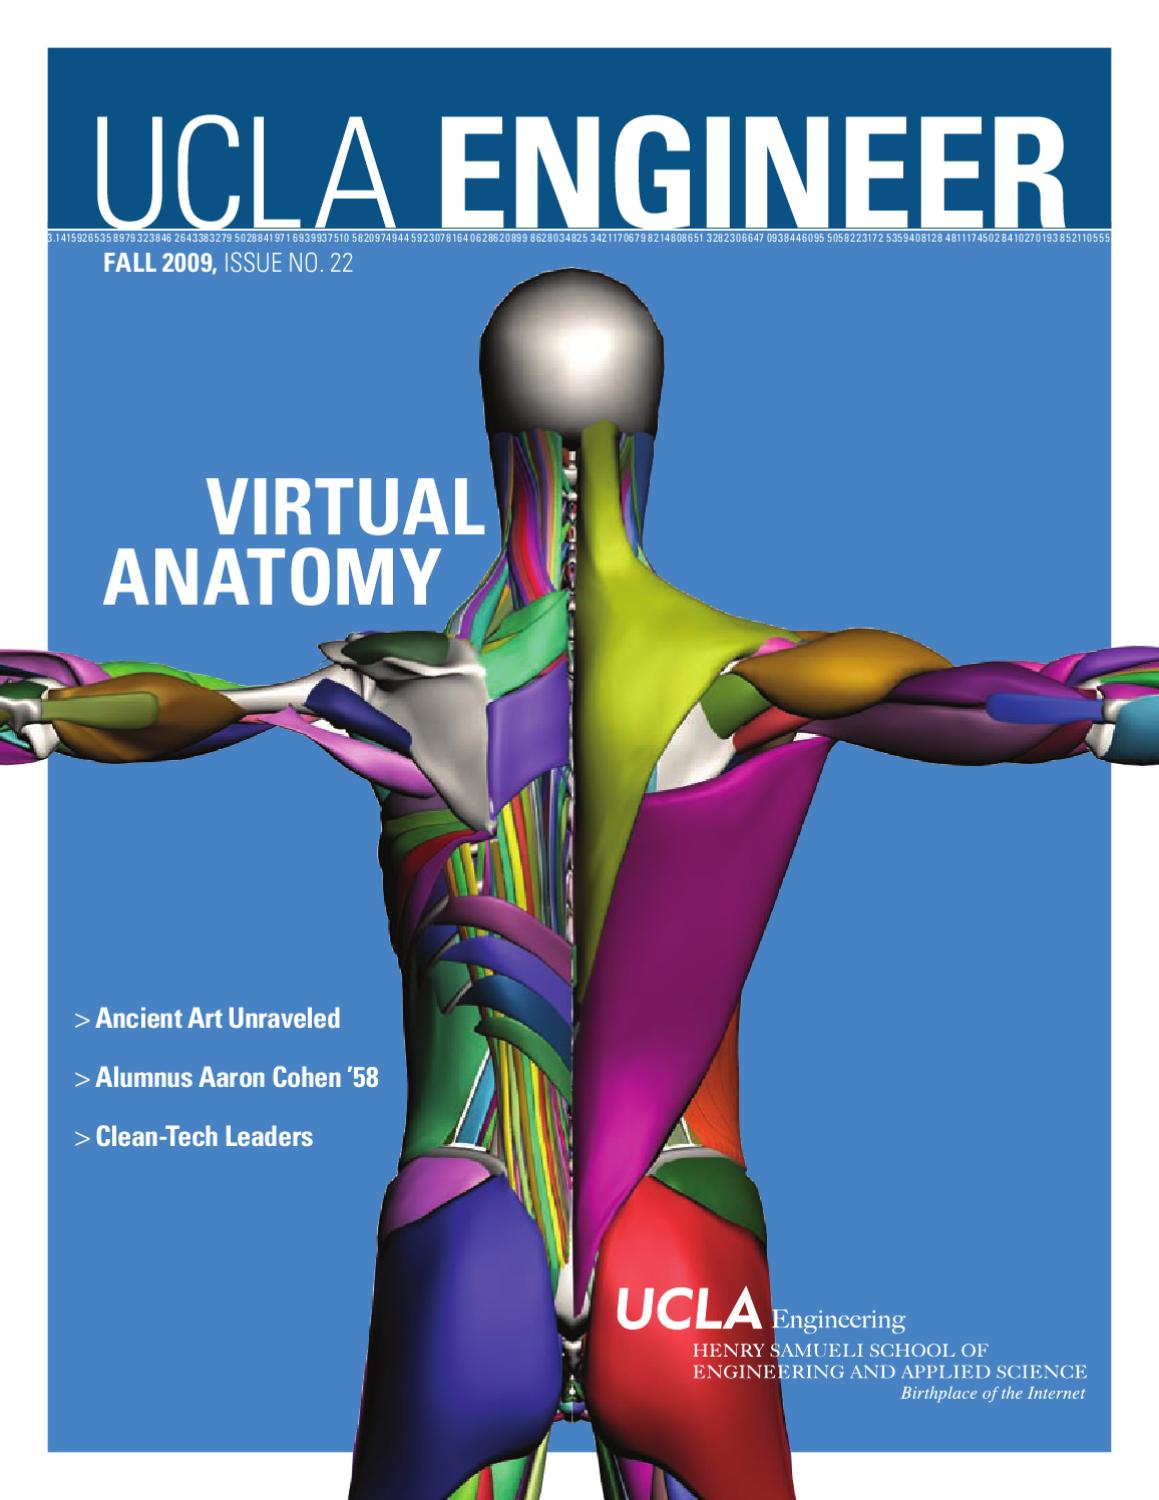 What kind of academic profile and other features are the deans and admittance at UCLA looking for?